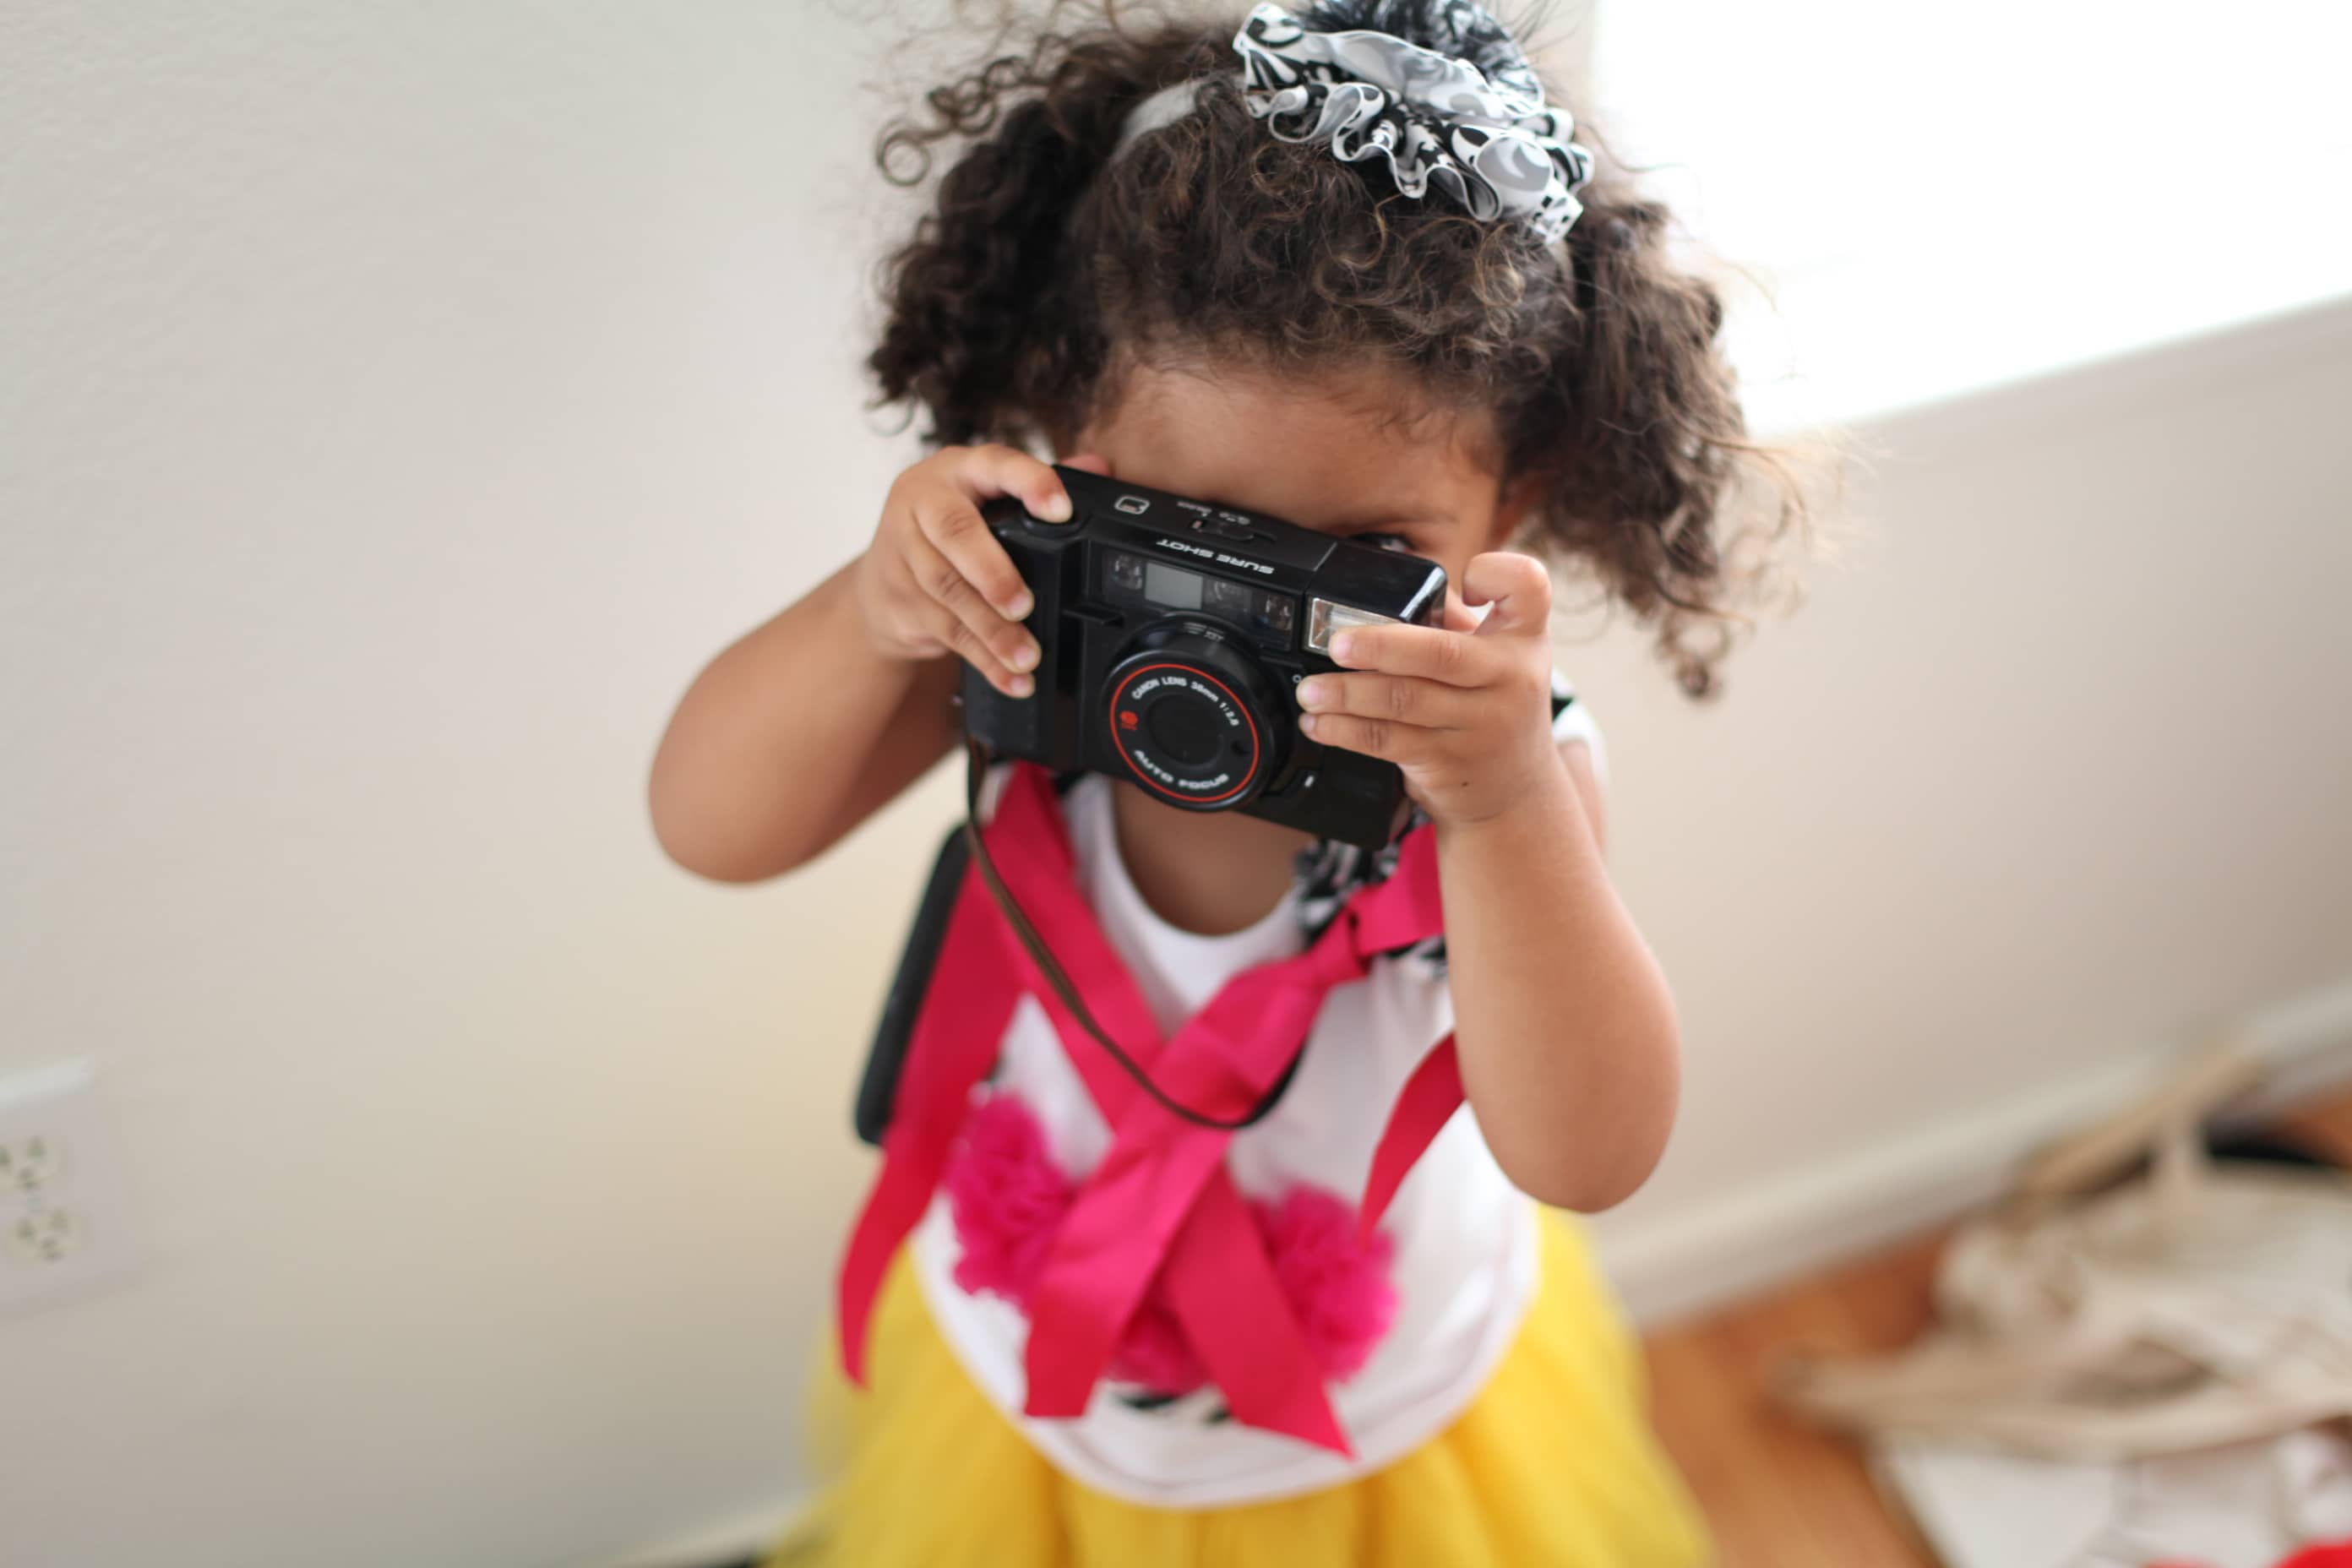 Child Photographer Child photographer